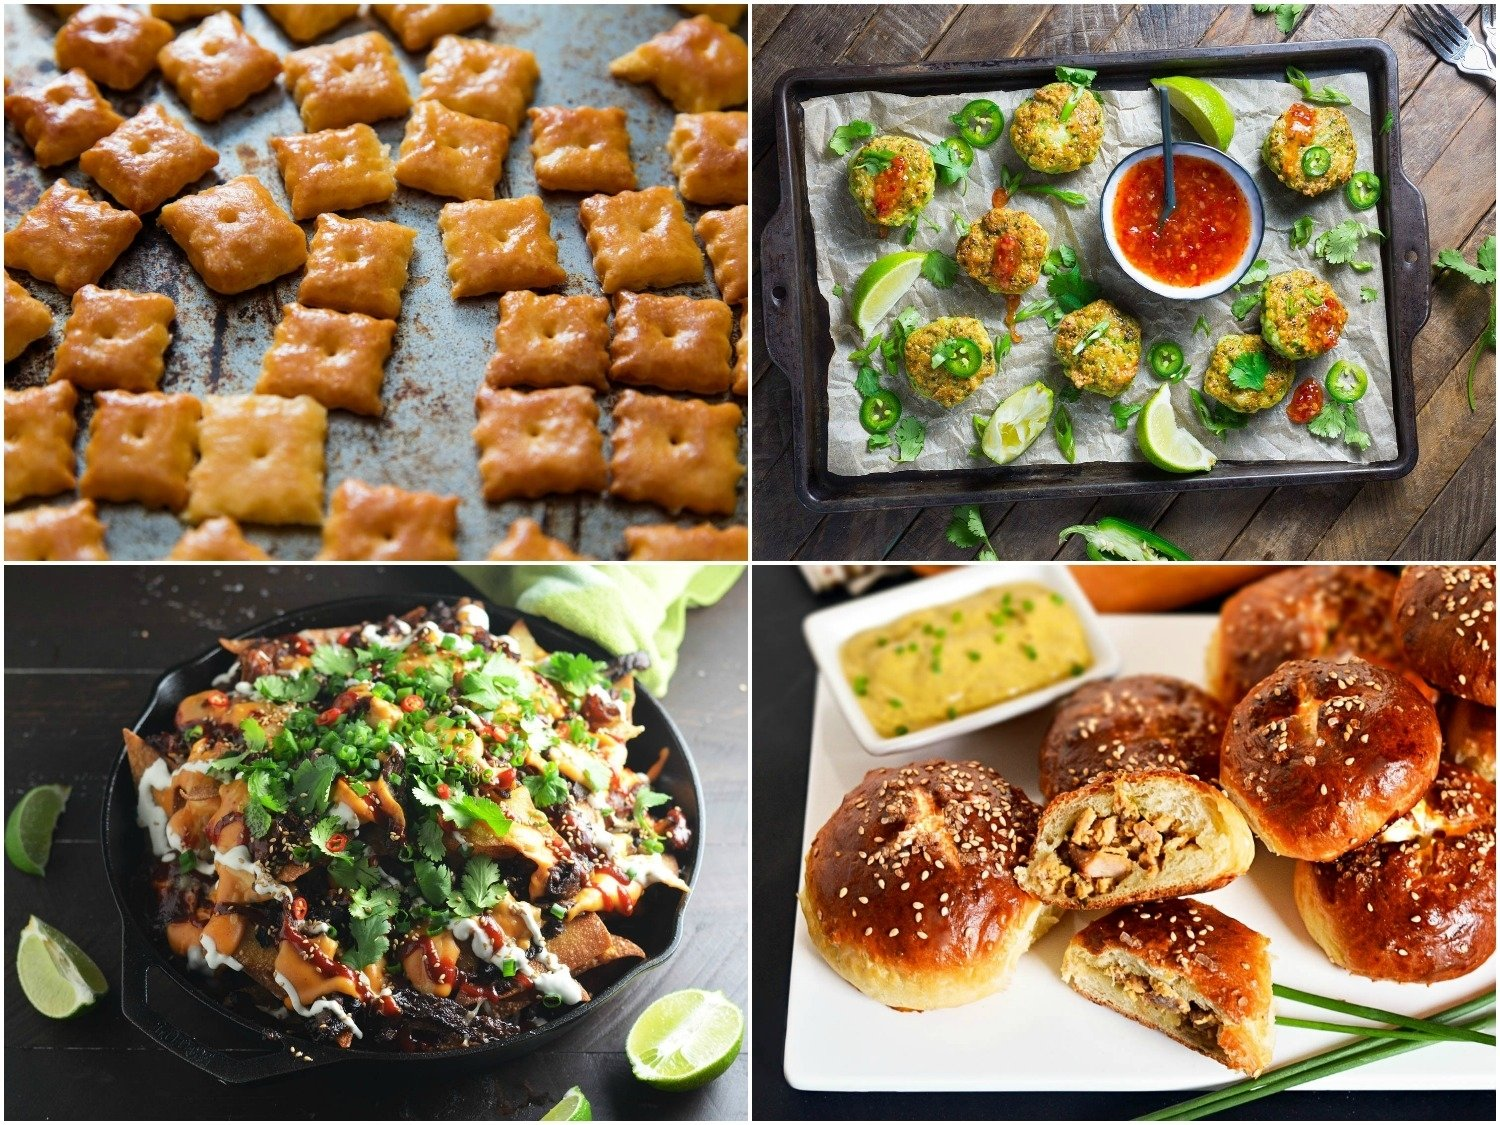 10 Spectacular Super Bowl Food Ideas Appetizers 24 super bowl snacks to kick off your party serious eats 2021